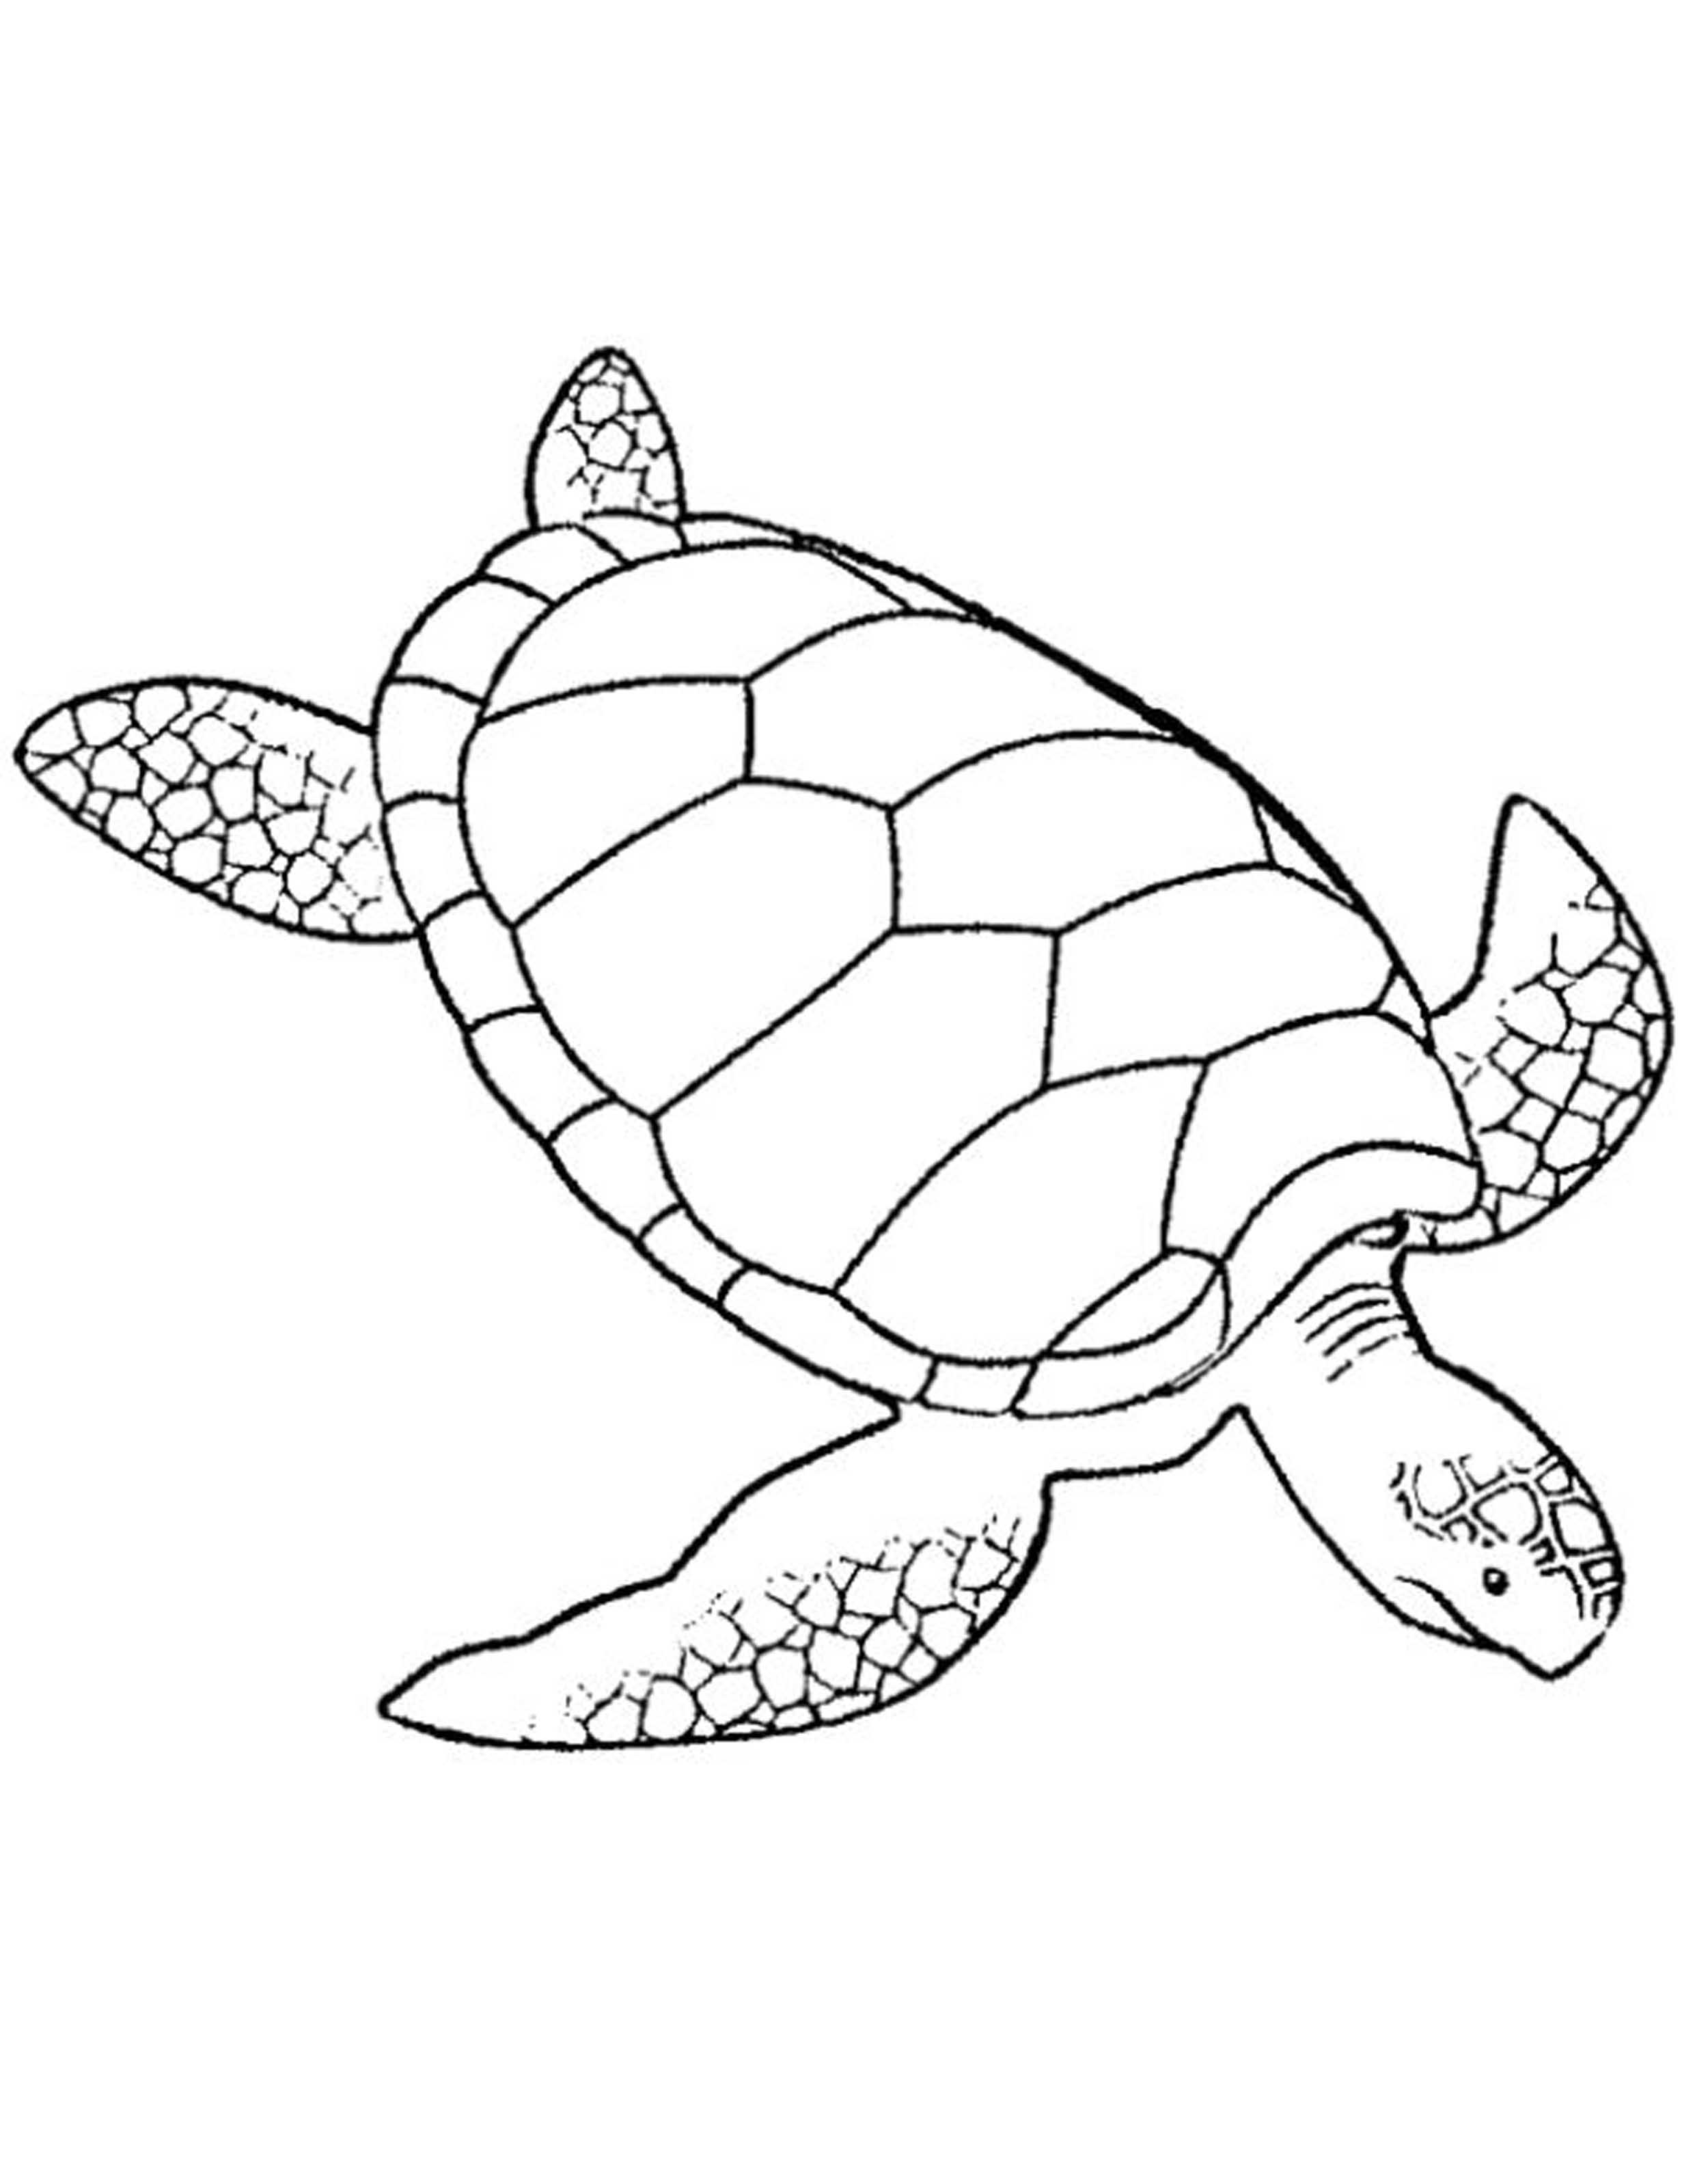 turtle coloring book page coloring pages turtles free printable coloring pages coloring book page turtle